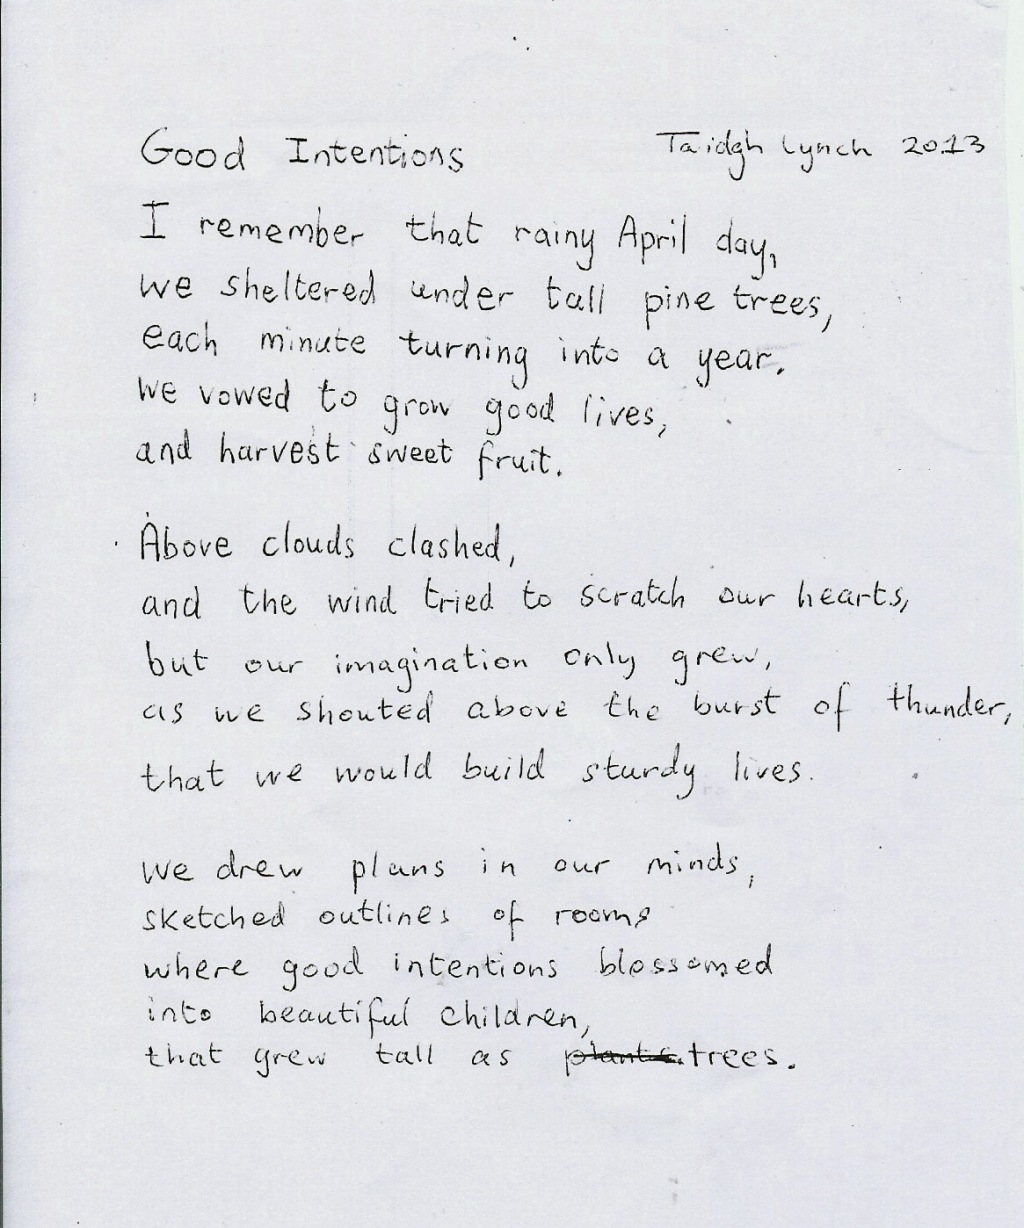 Enclosure: Poem by Taidgh Lynch